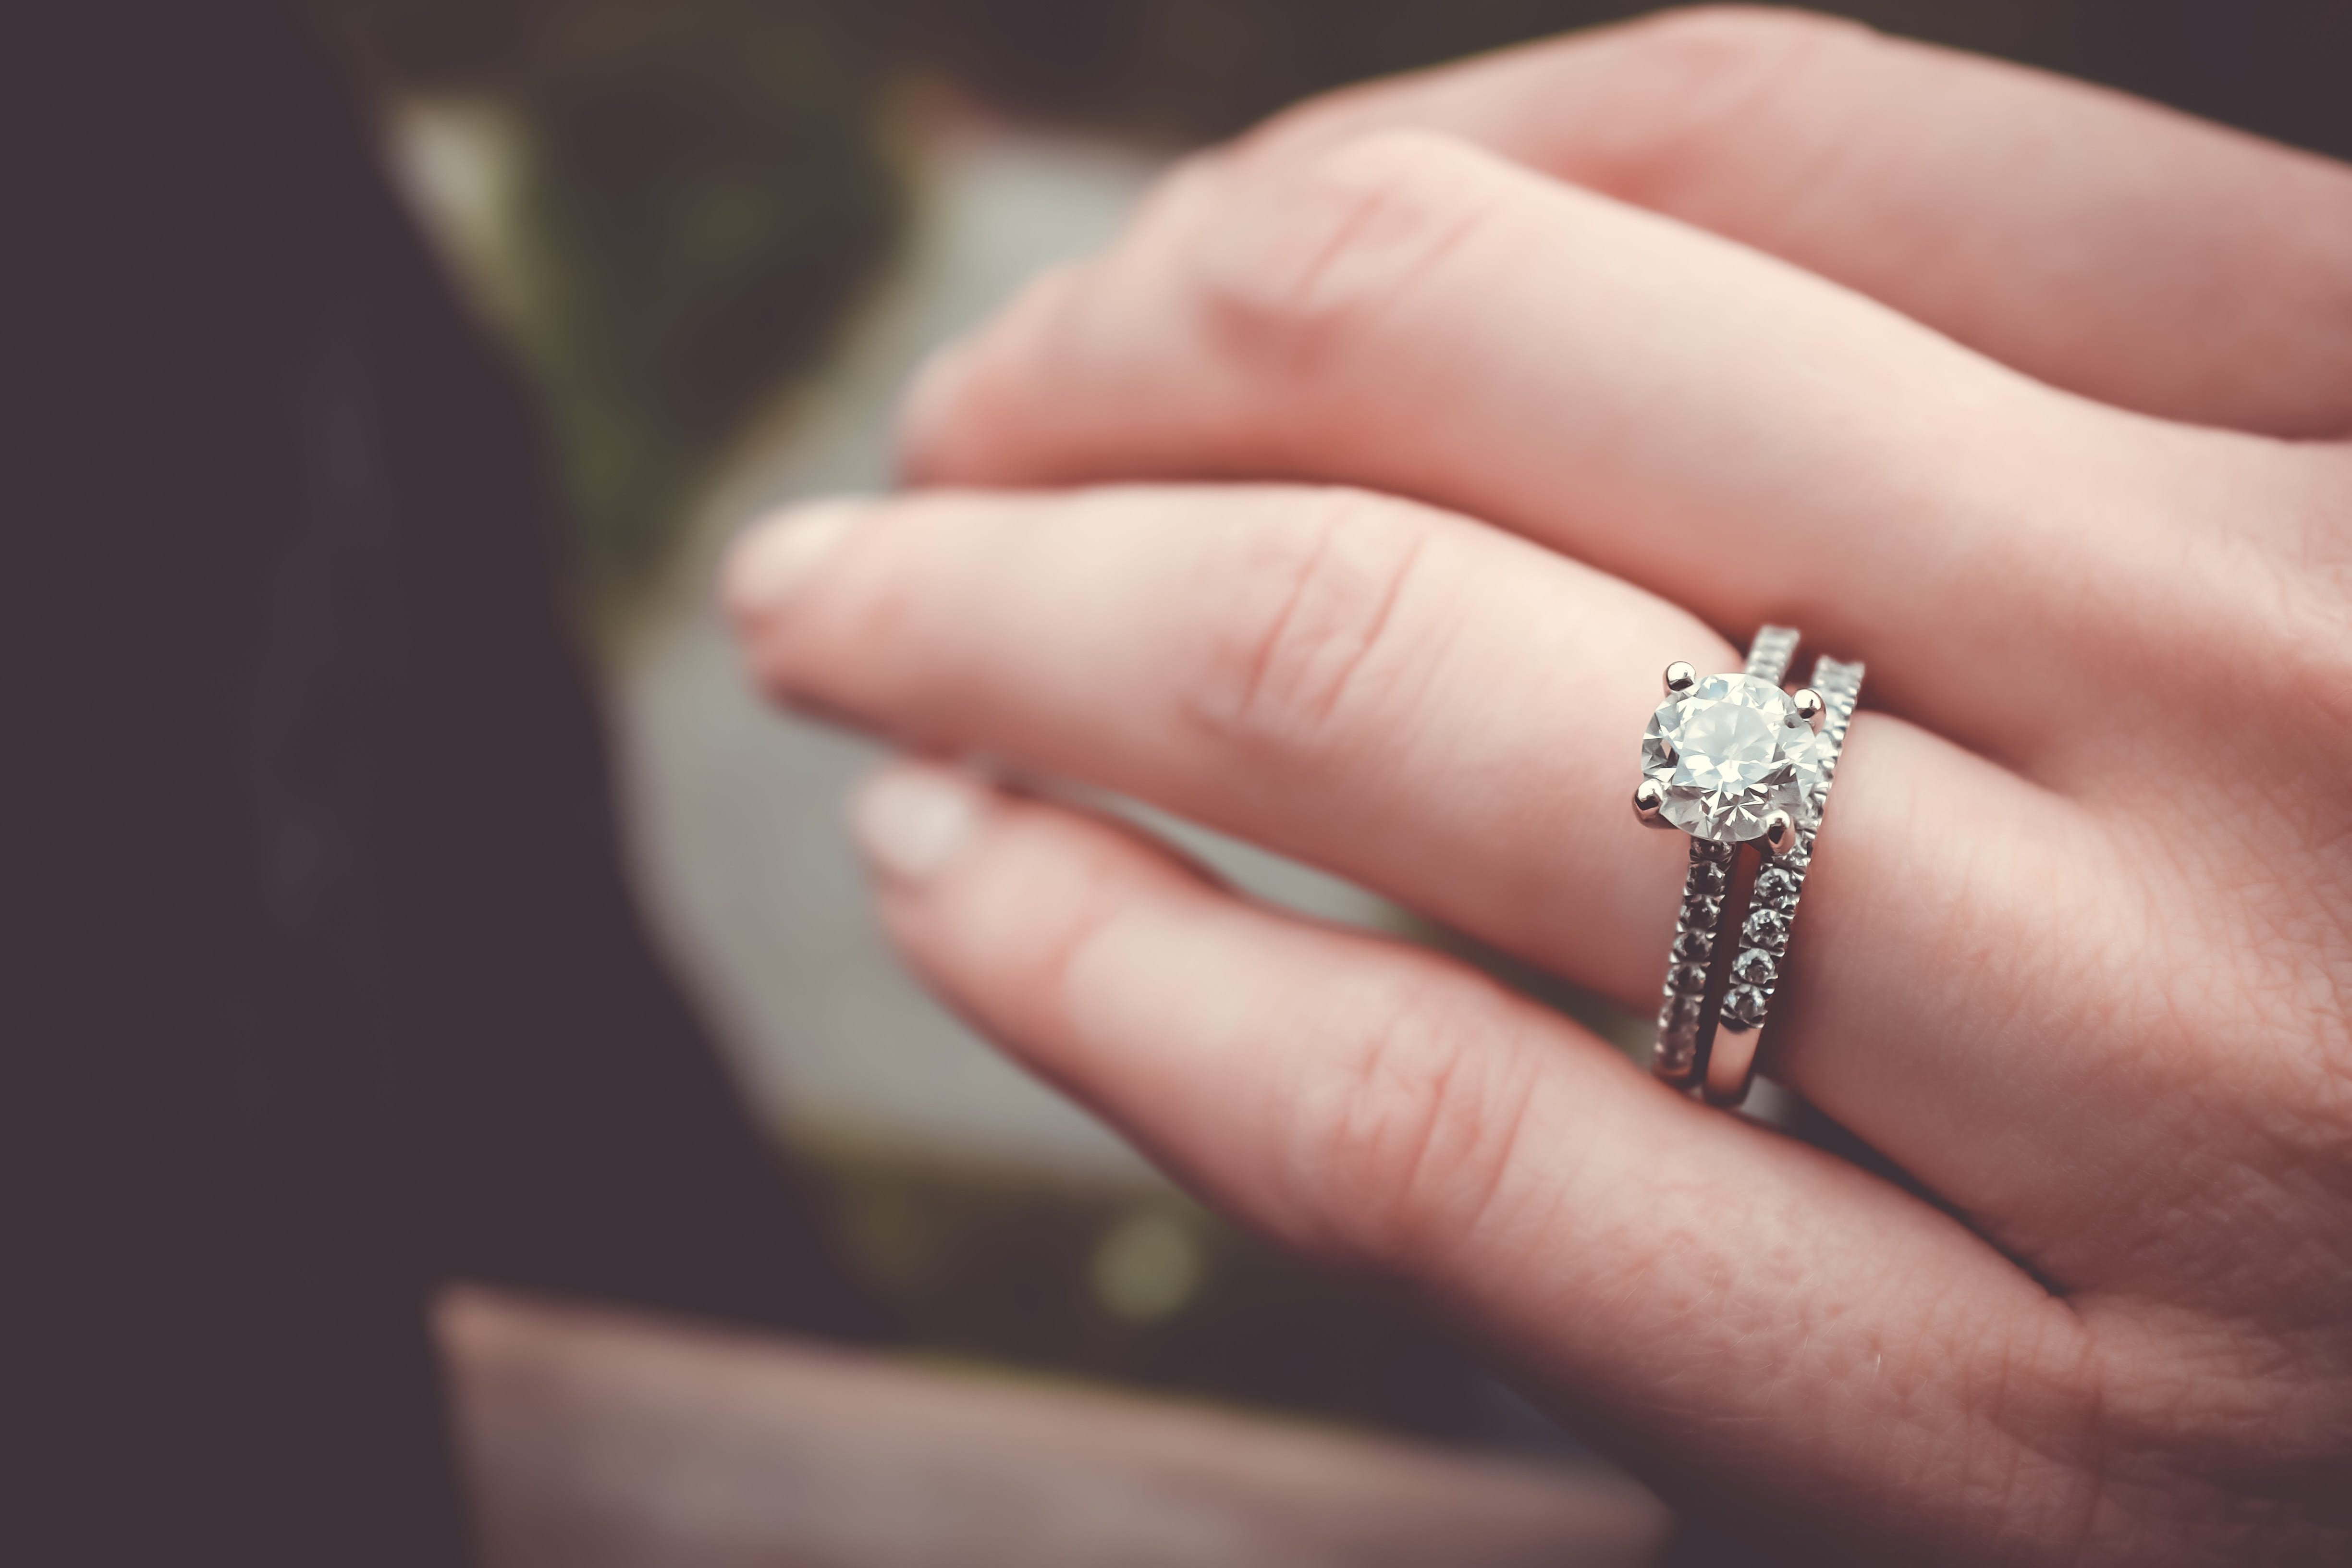 Costco Claims to Sell Tiffany Rings – A Costly Mistake - Legal Reader